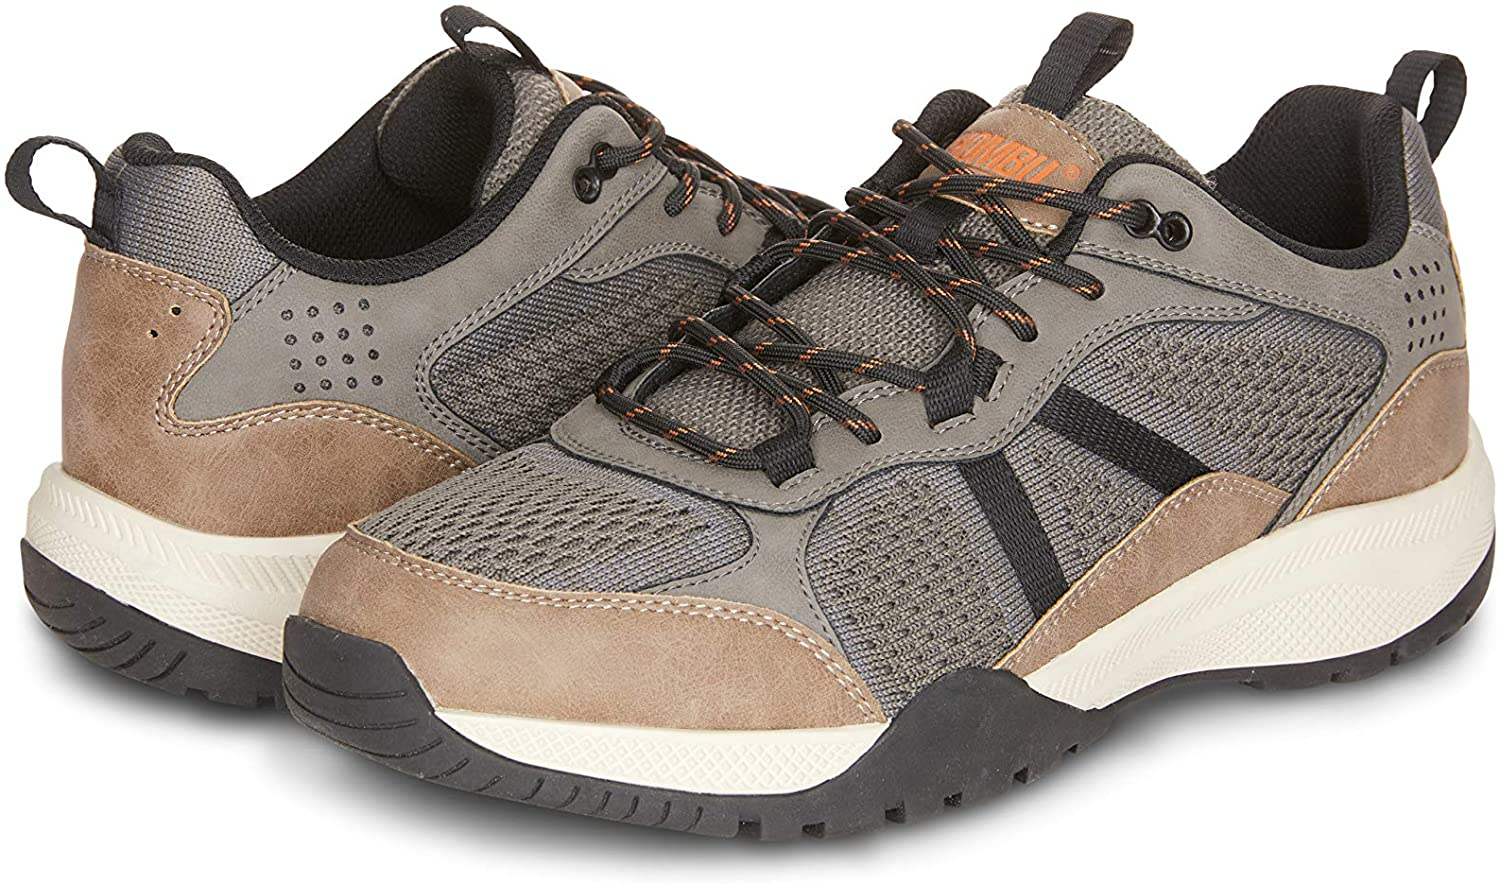 Khombu List price Men's Hiking Boots Cayenne Shoes Water 2 SALENEW very popular Resistant